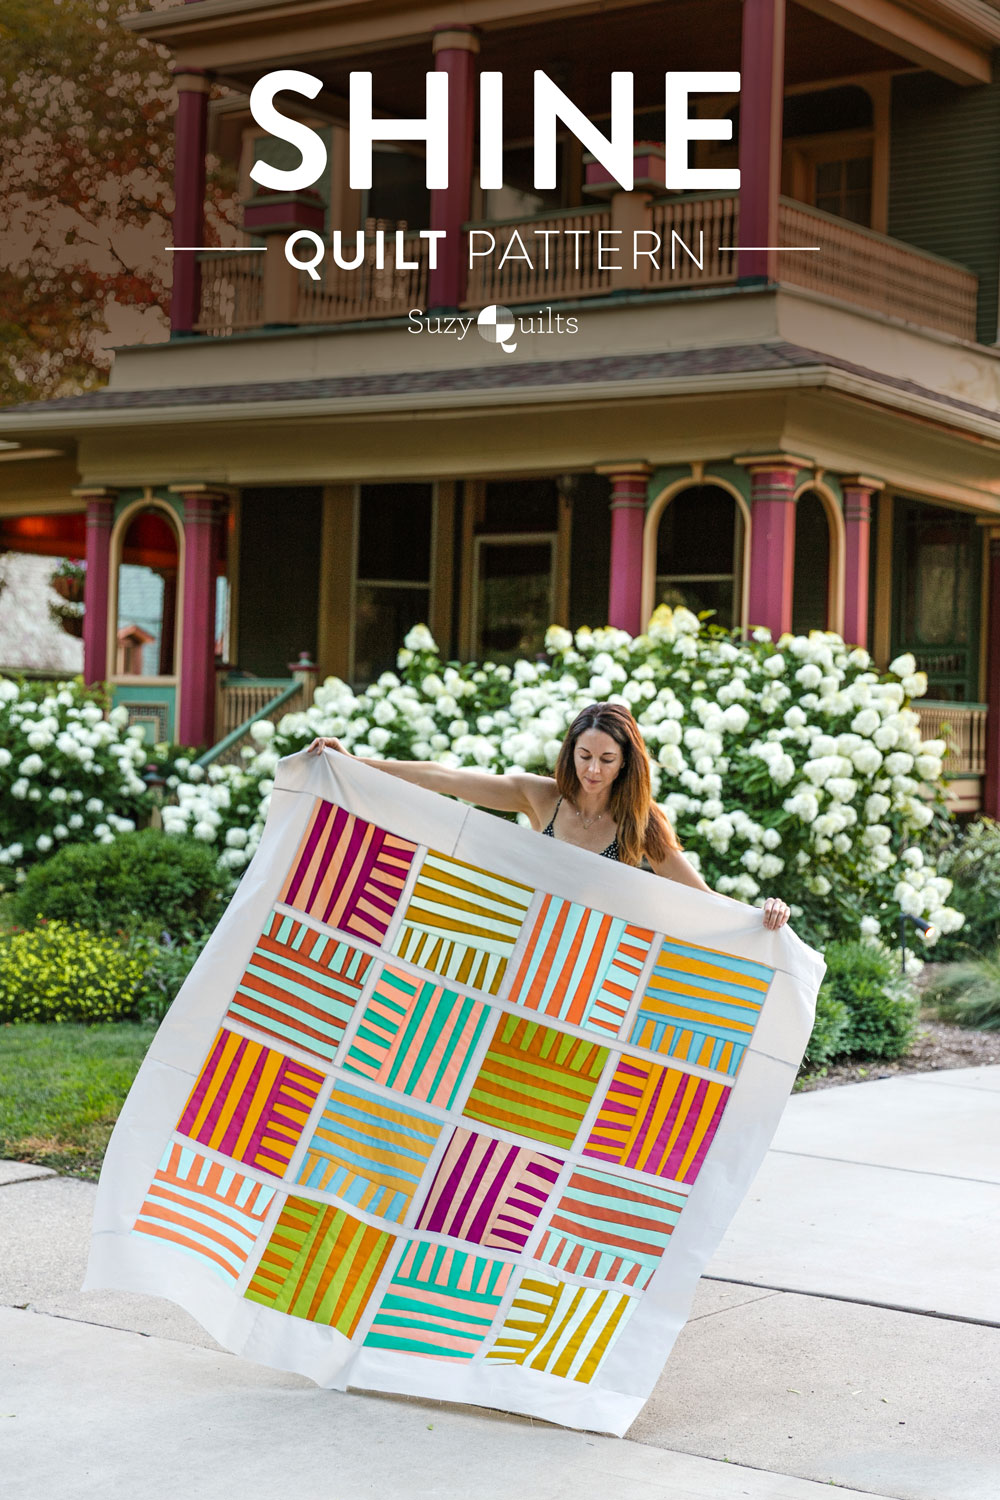 The Shine quilt sew along includes lots of added tips and videos to help you make this modern quilt pattern. This fat quarter quilt pattern is beginner friendly and focuses on improv sewing. suzyquilts.com #quiltedpillow #quilting